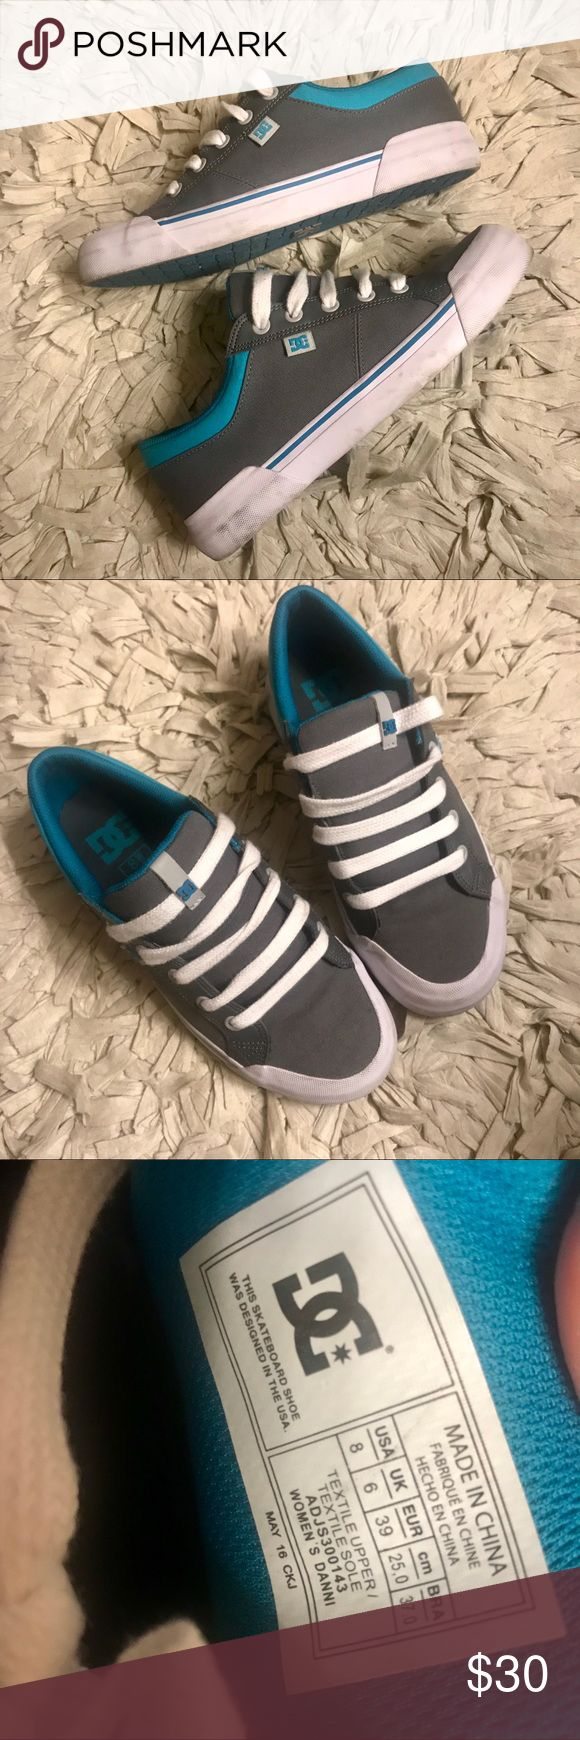 DC sneakers Gently worn a few times. In great condition DC Shoes Sneakers